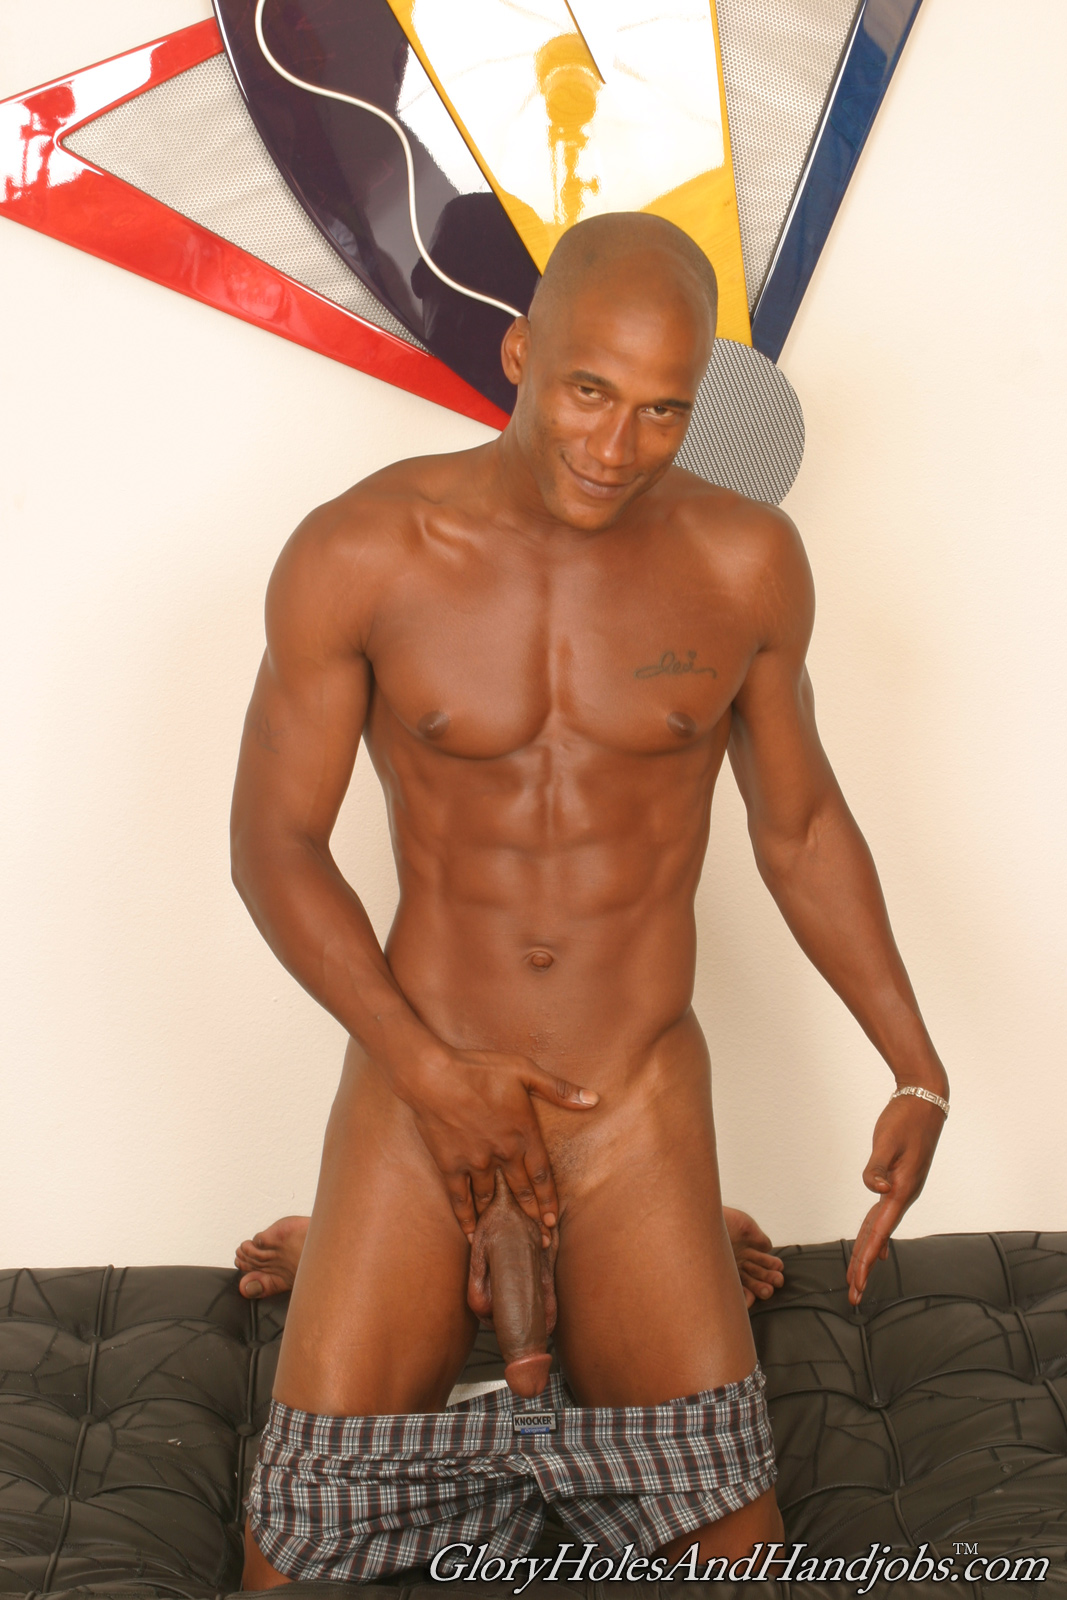 Dogfart Gay Porn - 1 MEMBERSHIP = ALL DOGFART NETWORK SITES! Unlock The Full Potential of Your  Internet Porn With The Leader In Interracial Entertainment!